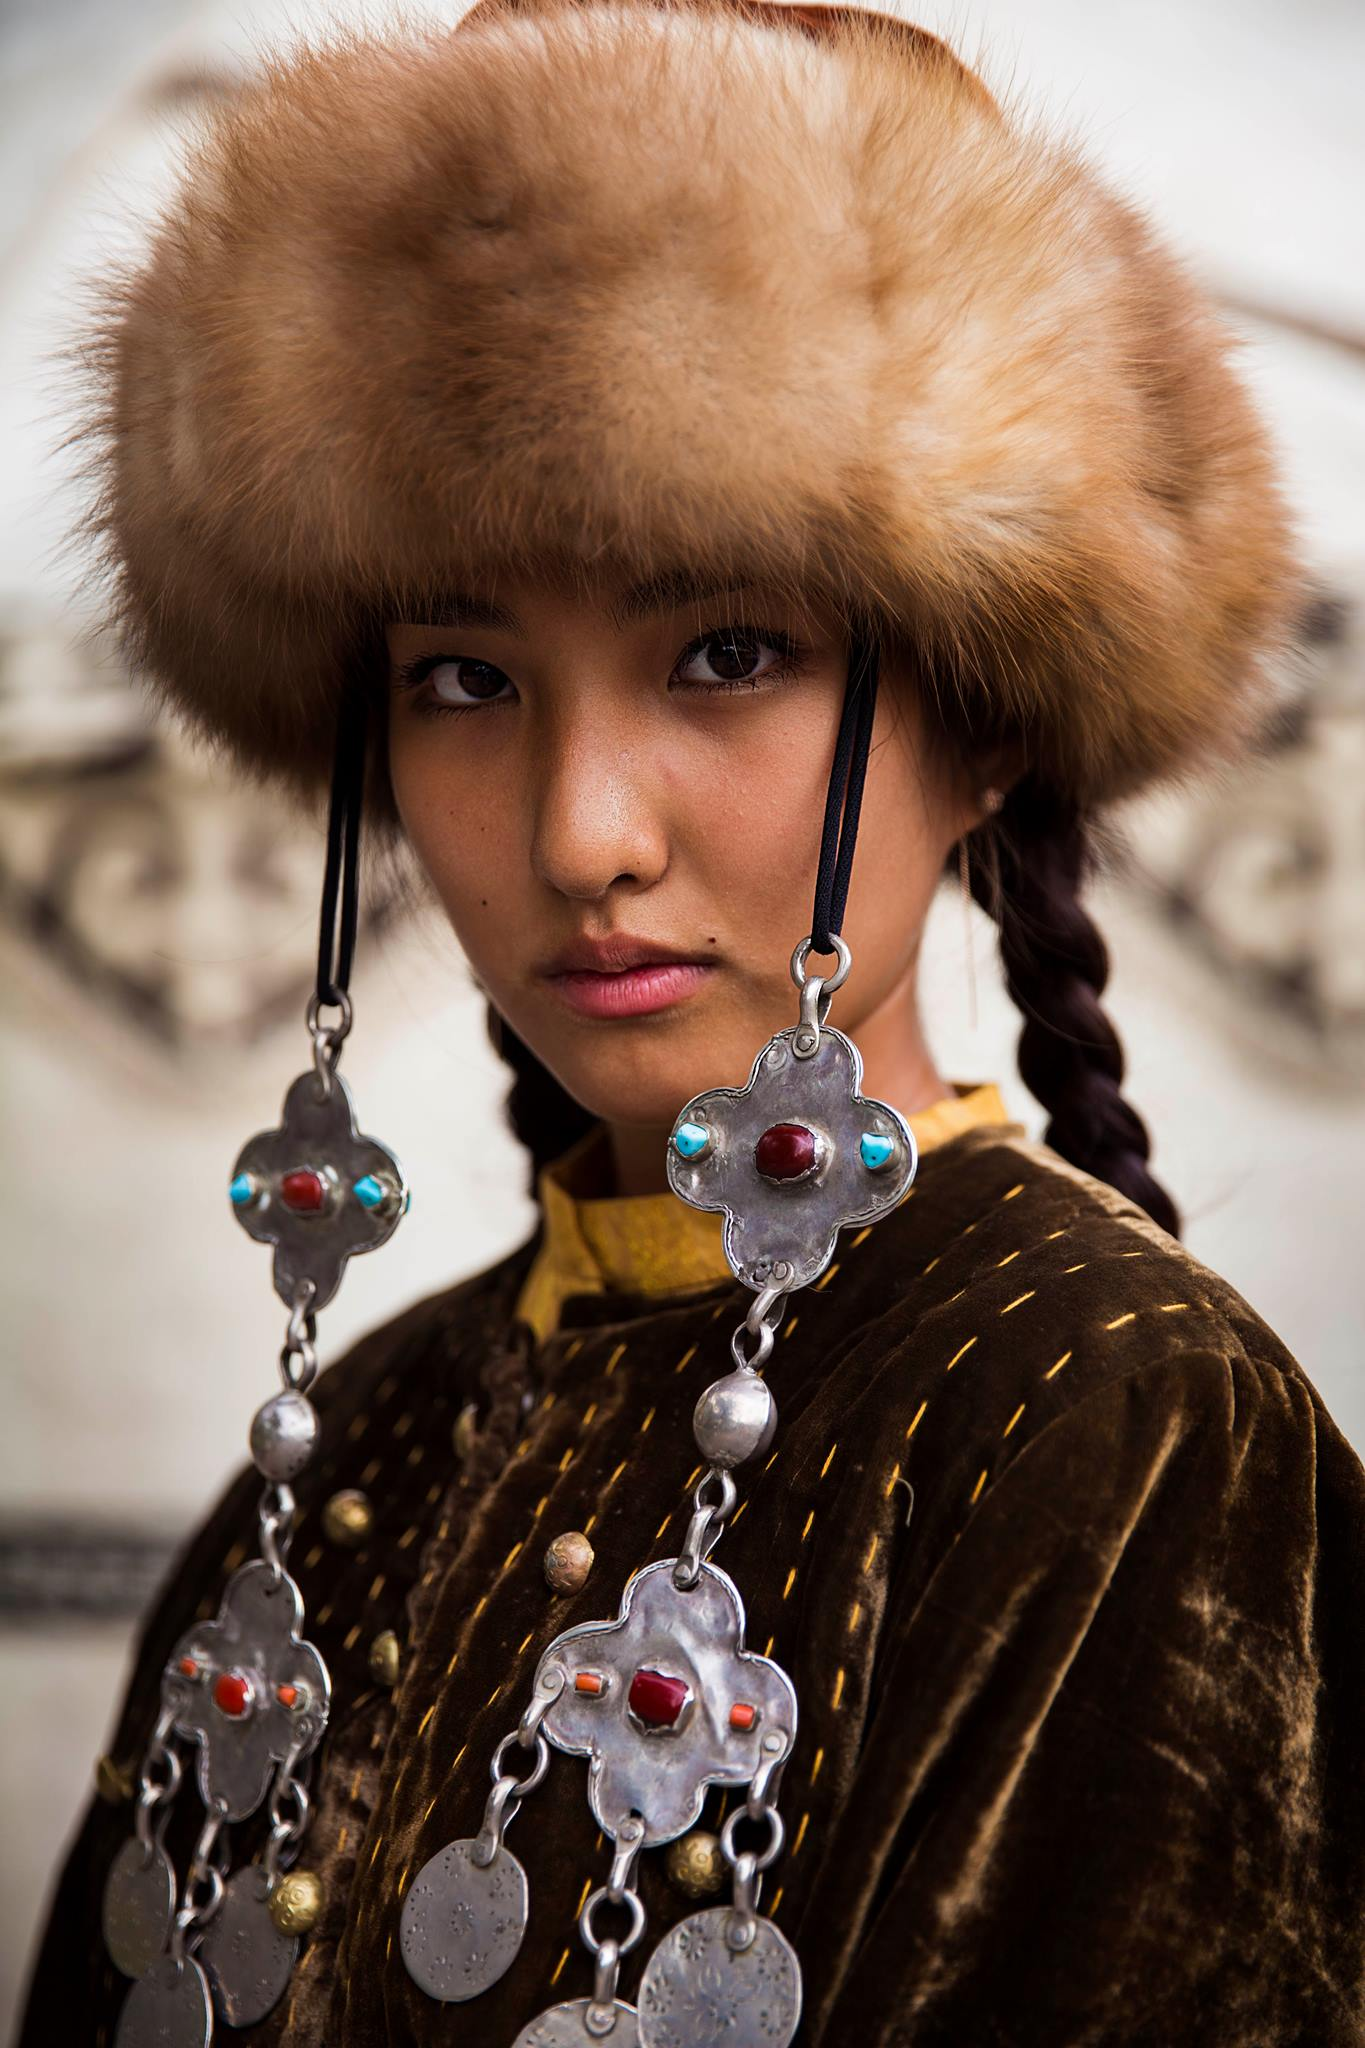 kyrgyzstan woman wearing hat portrait photography in color by mihaela noroc, the atlas of beauty series